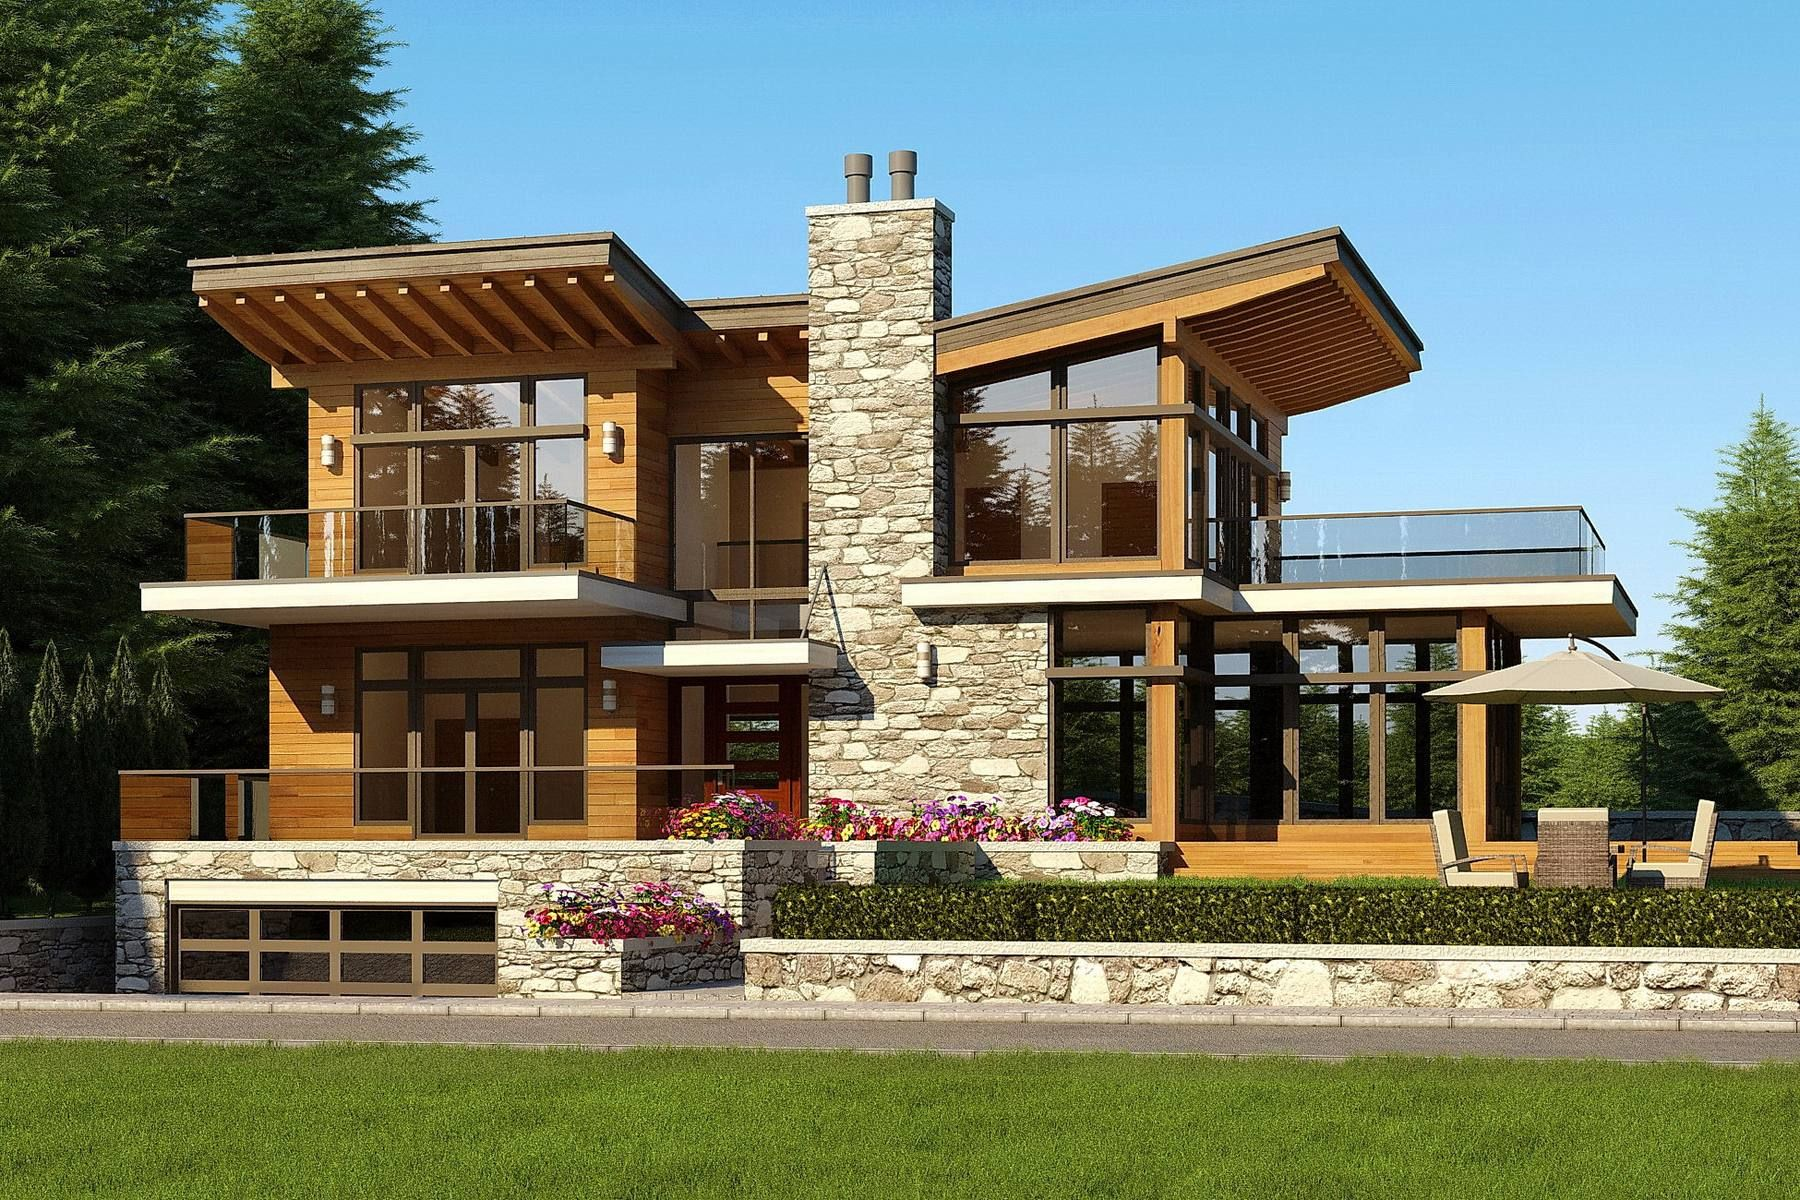 Alpine On Residential Architect Vancouver Total Area 4500 Sq Ft Construction Type Modern Roof Design Contemporary House Exterior Contemporary House Design